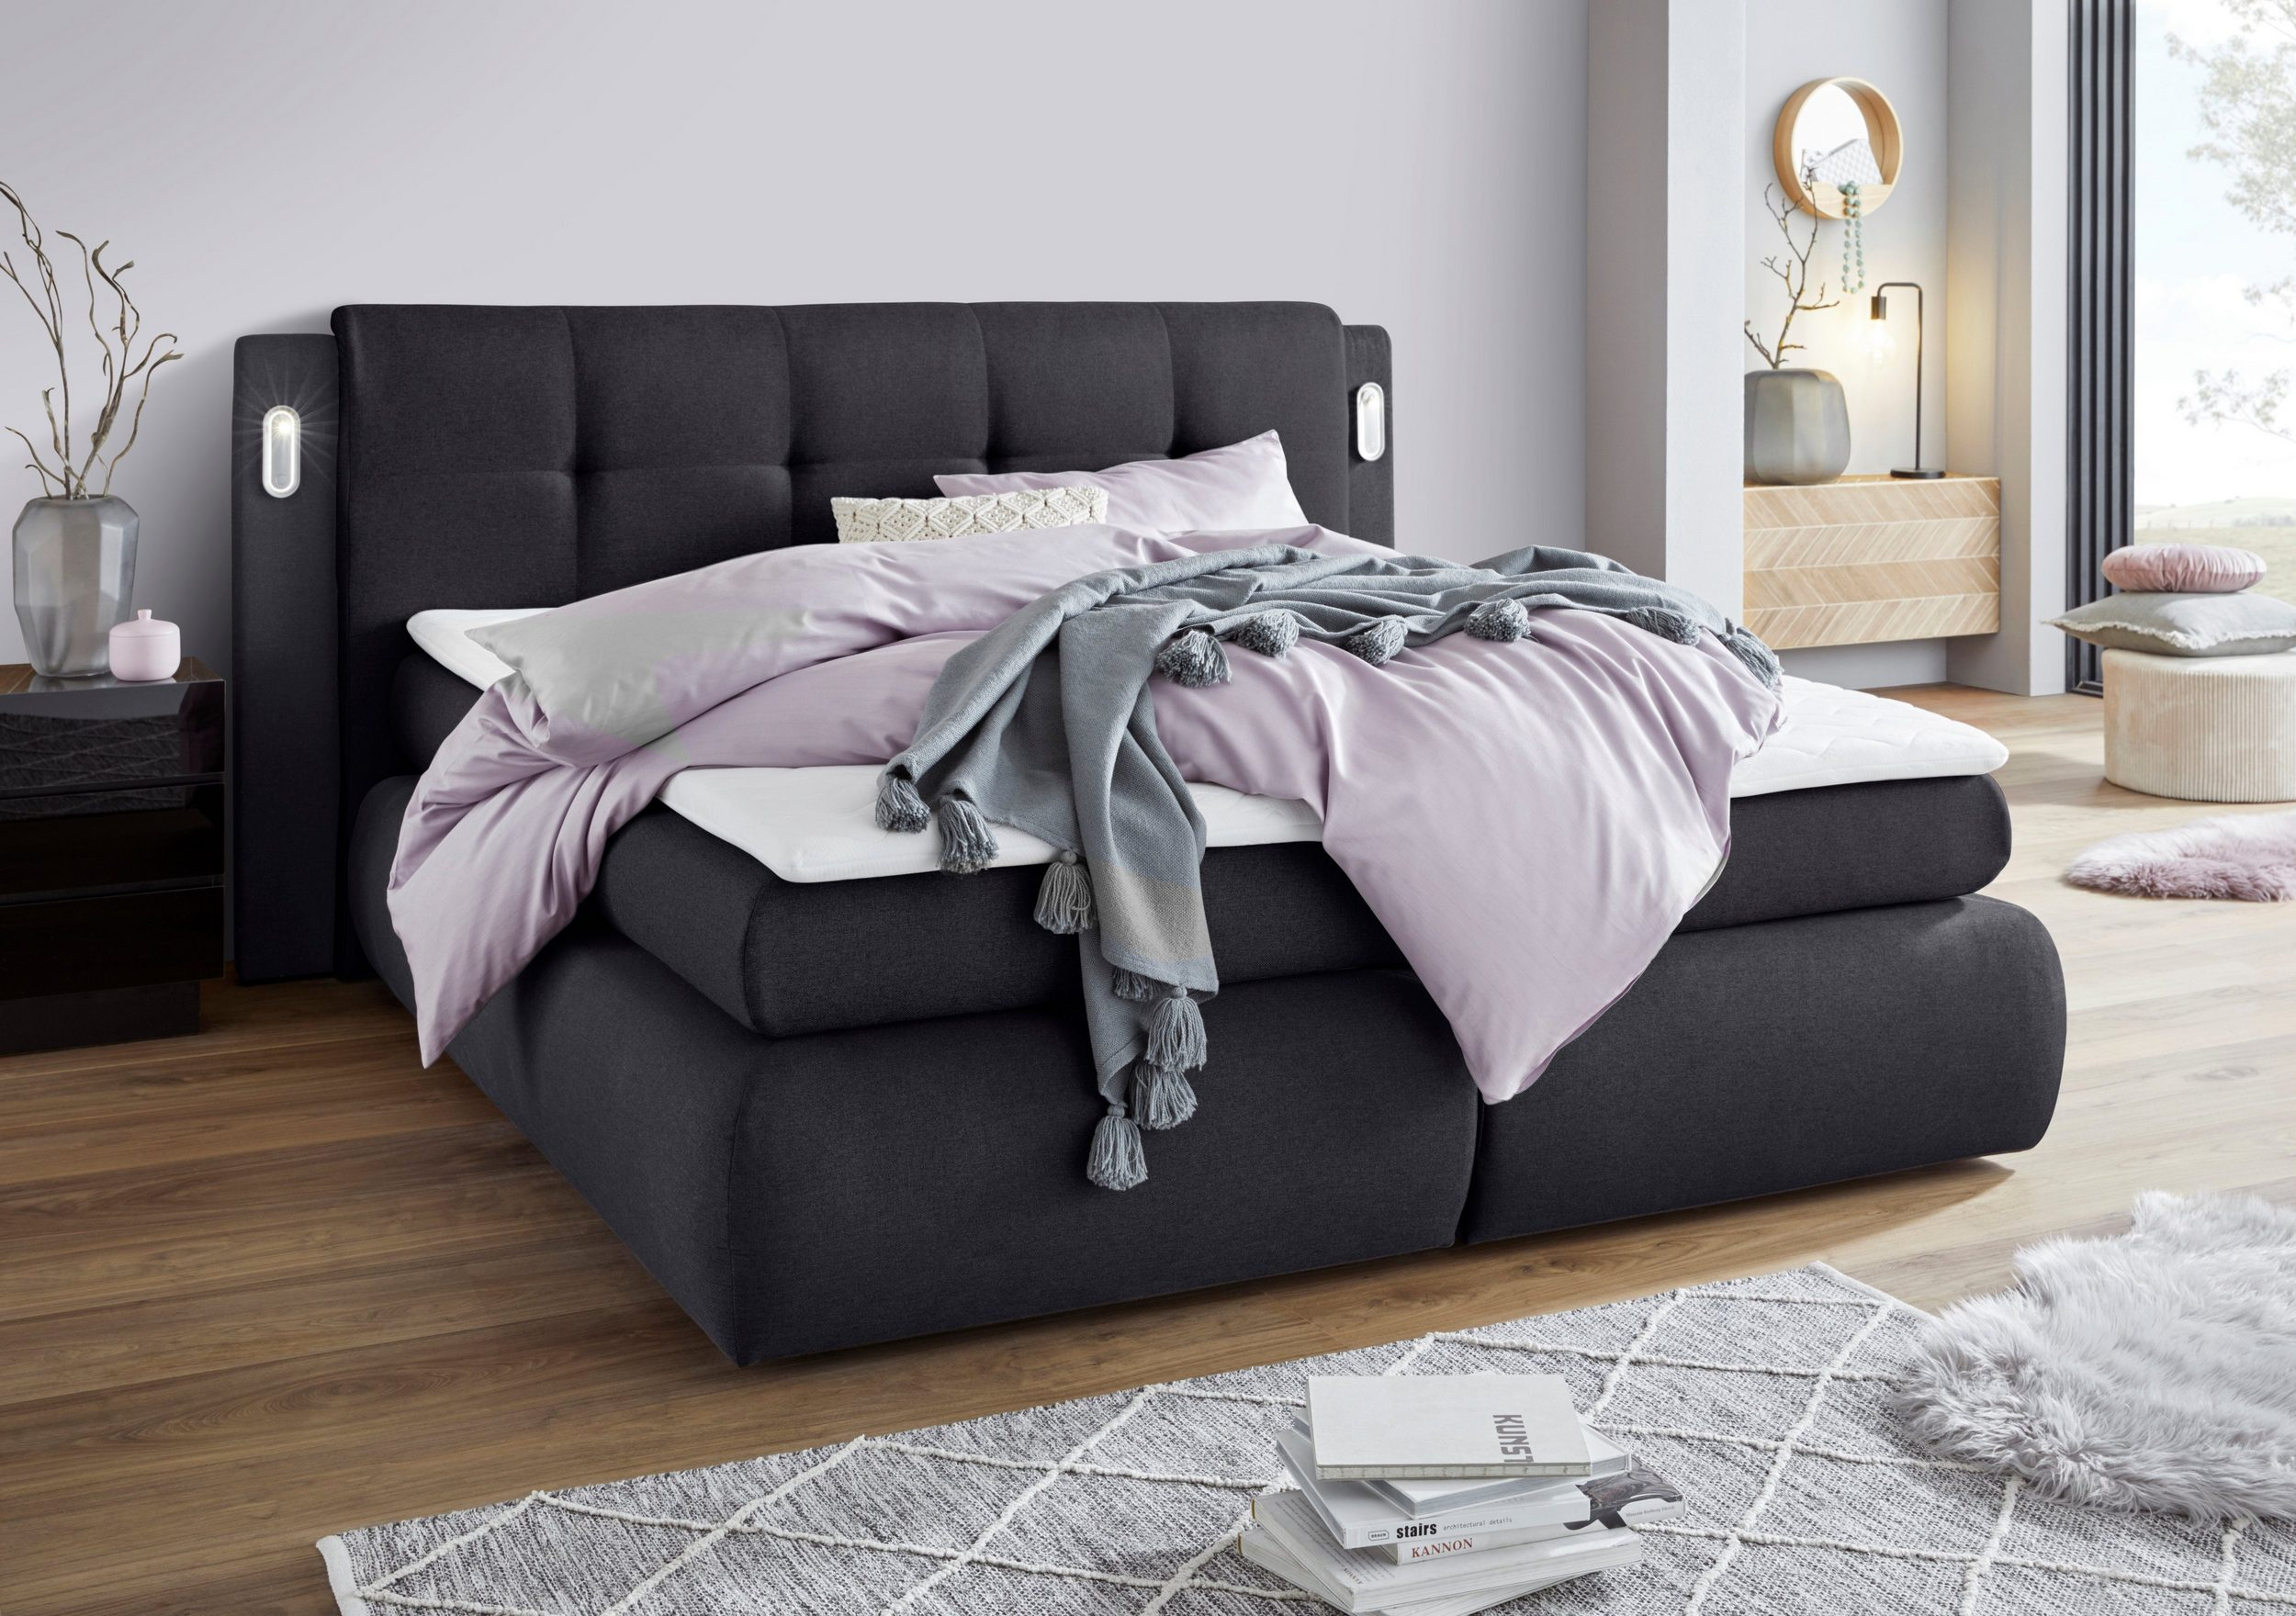 Collection AB Borna Boxspringbett mit Bettkasten